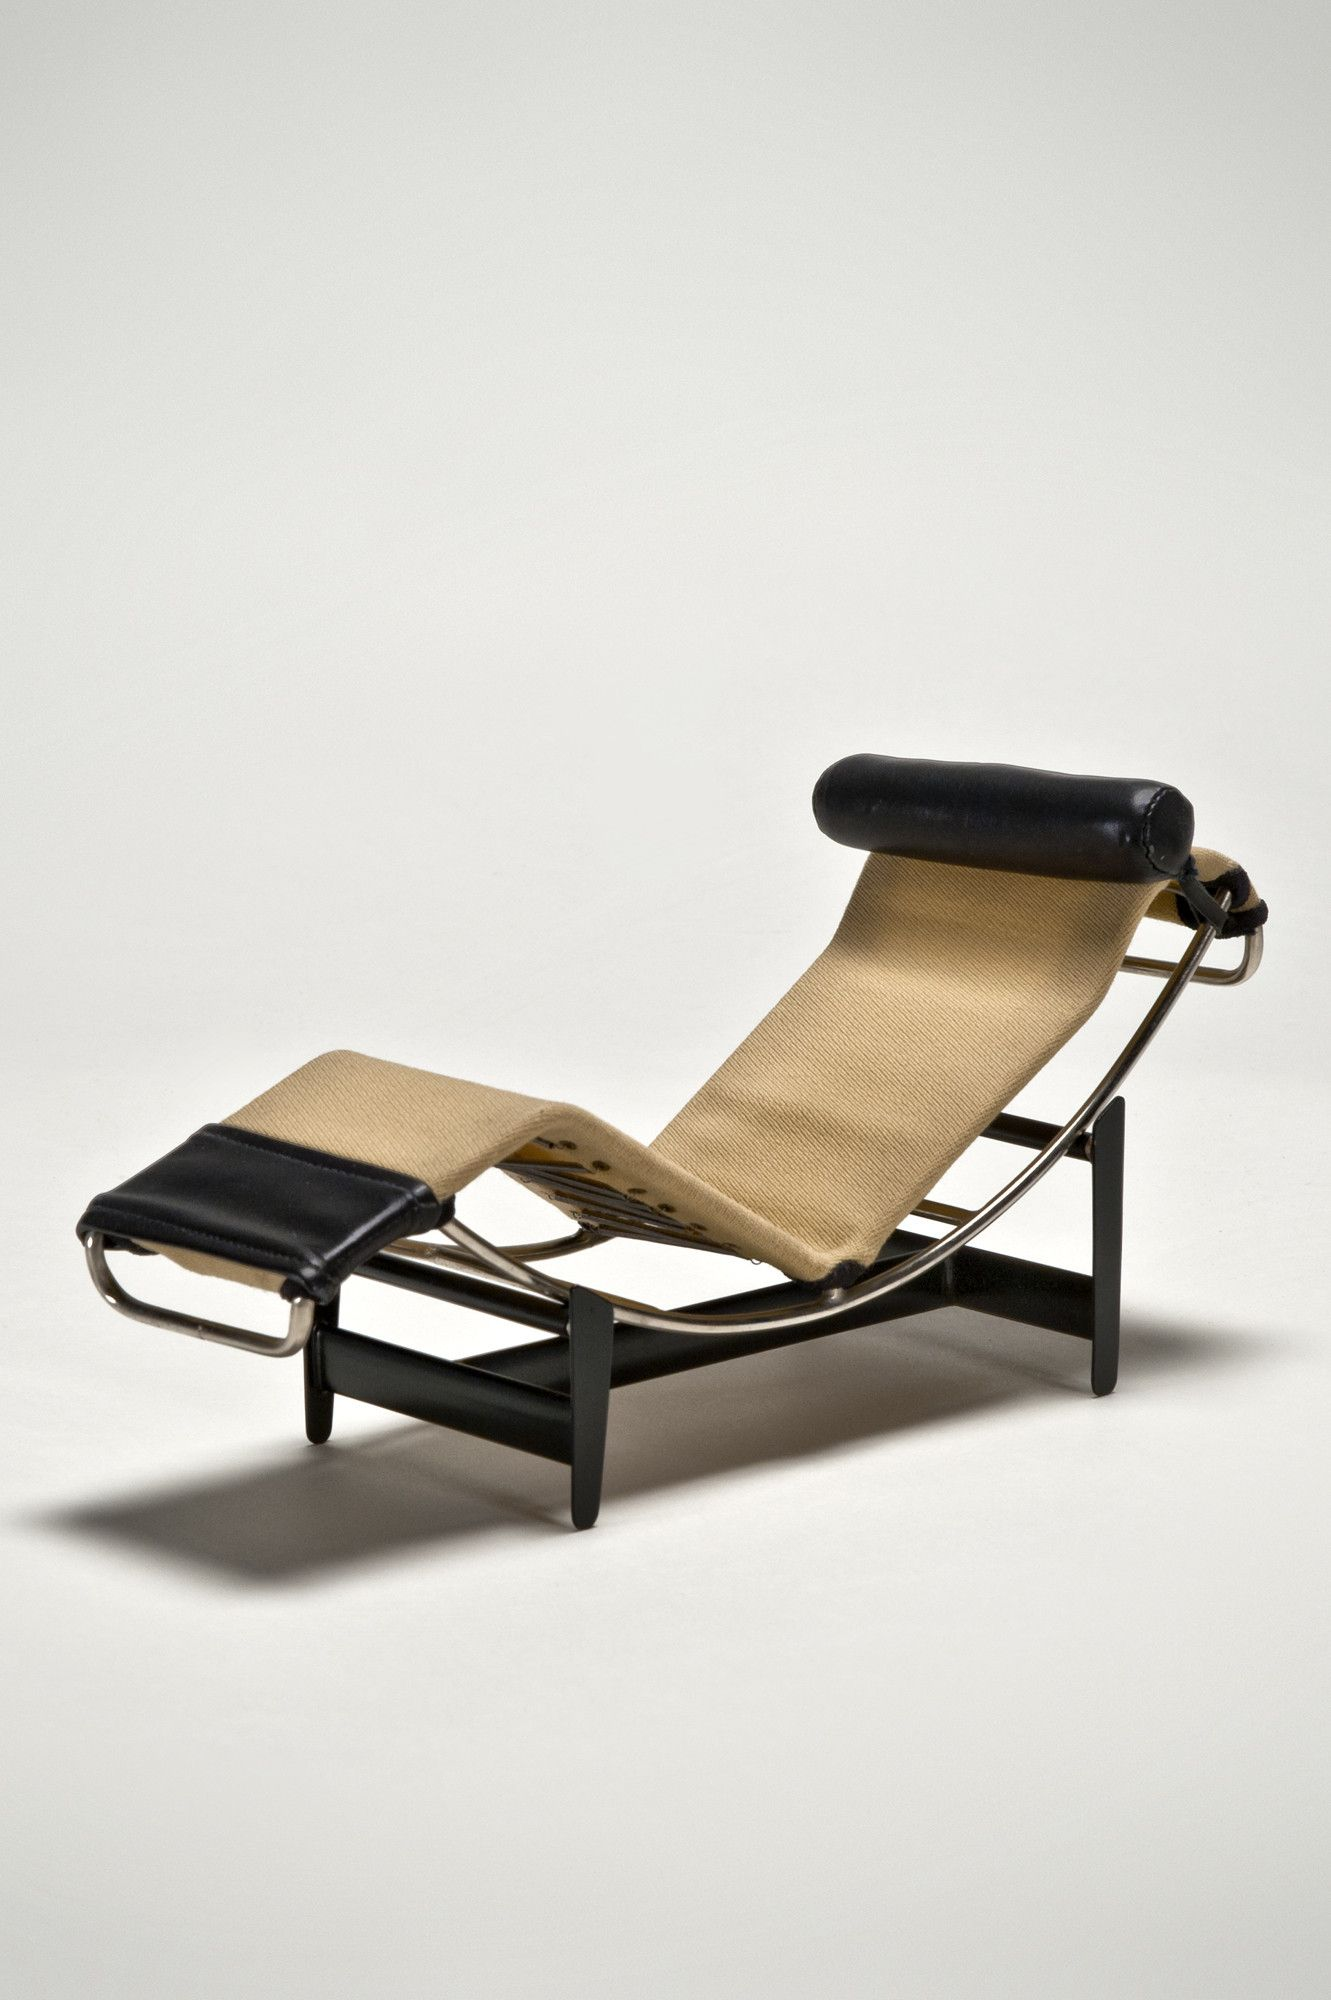 Chaise Design Miniature Chaise Lounge 1 6 Scale Miniature Prototype By